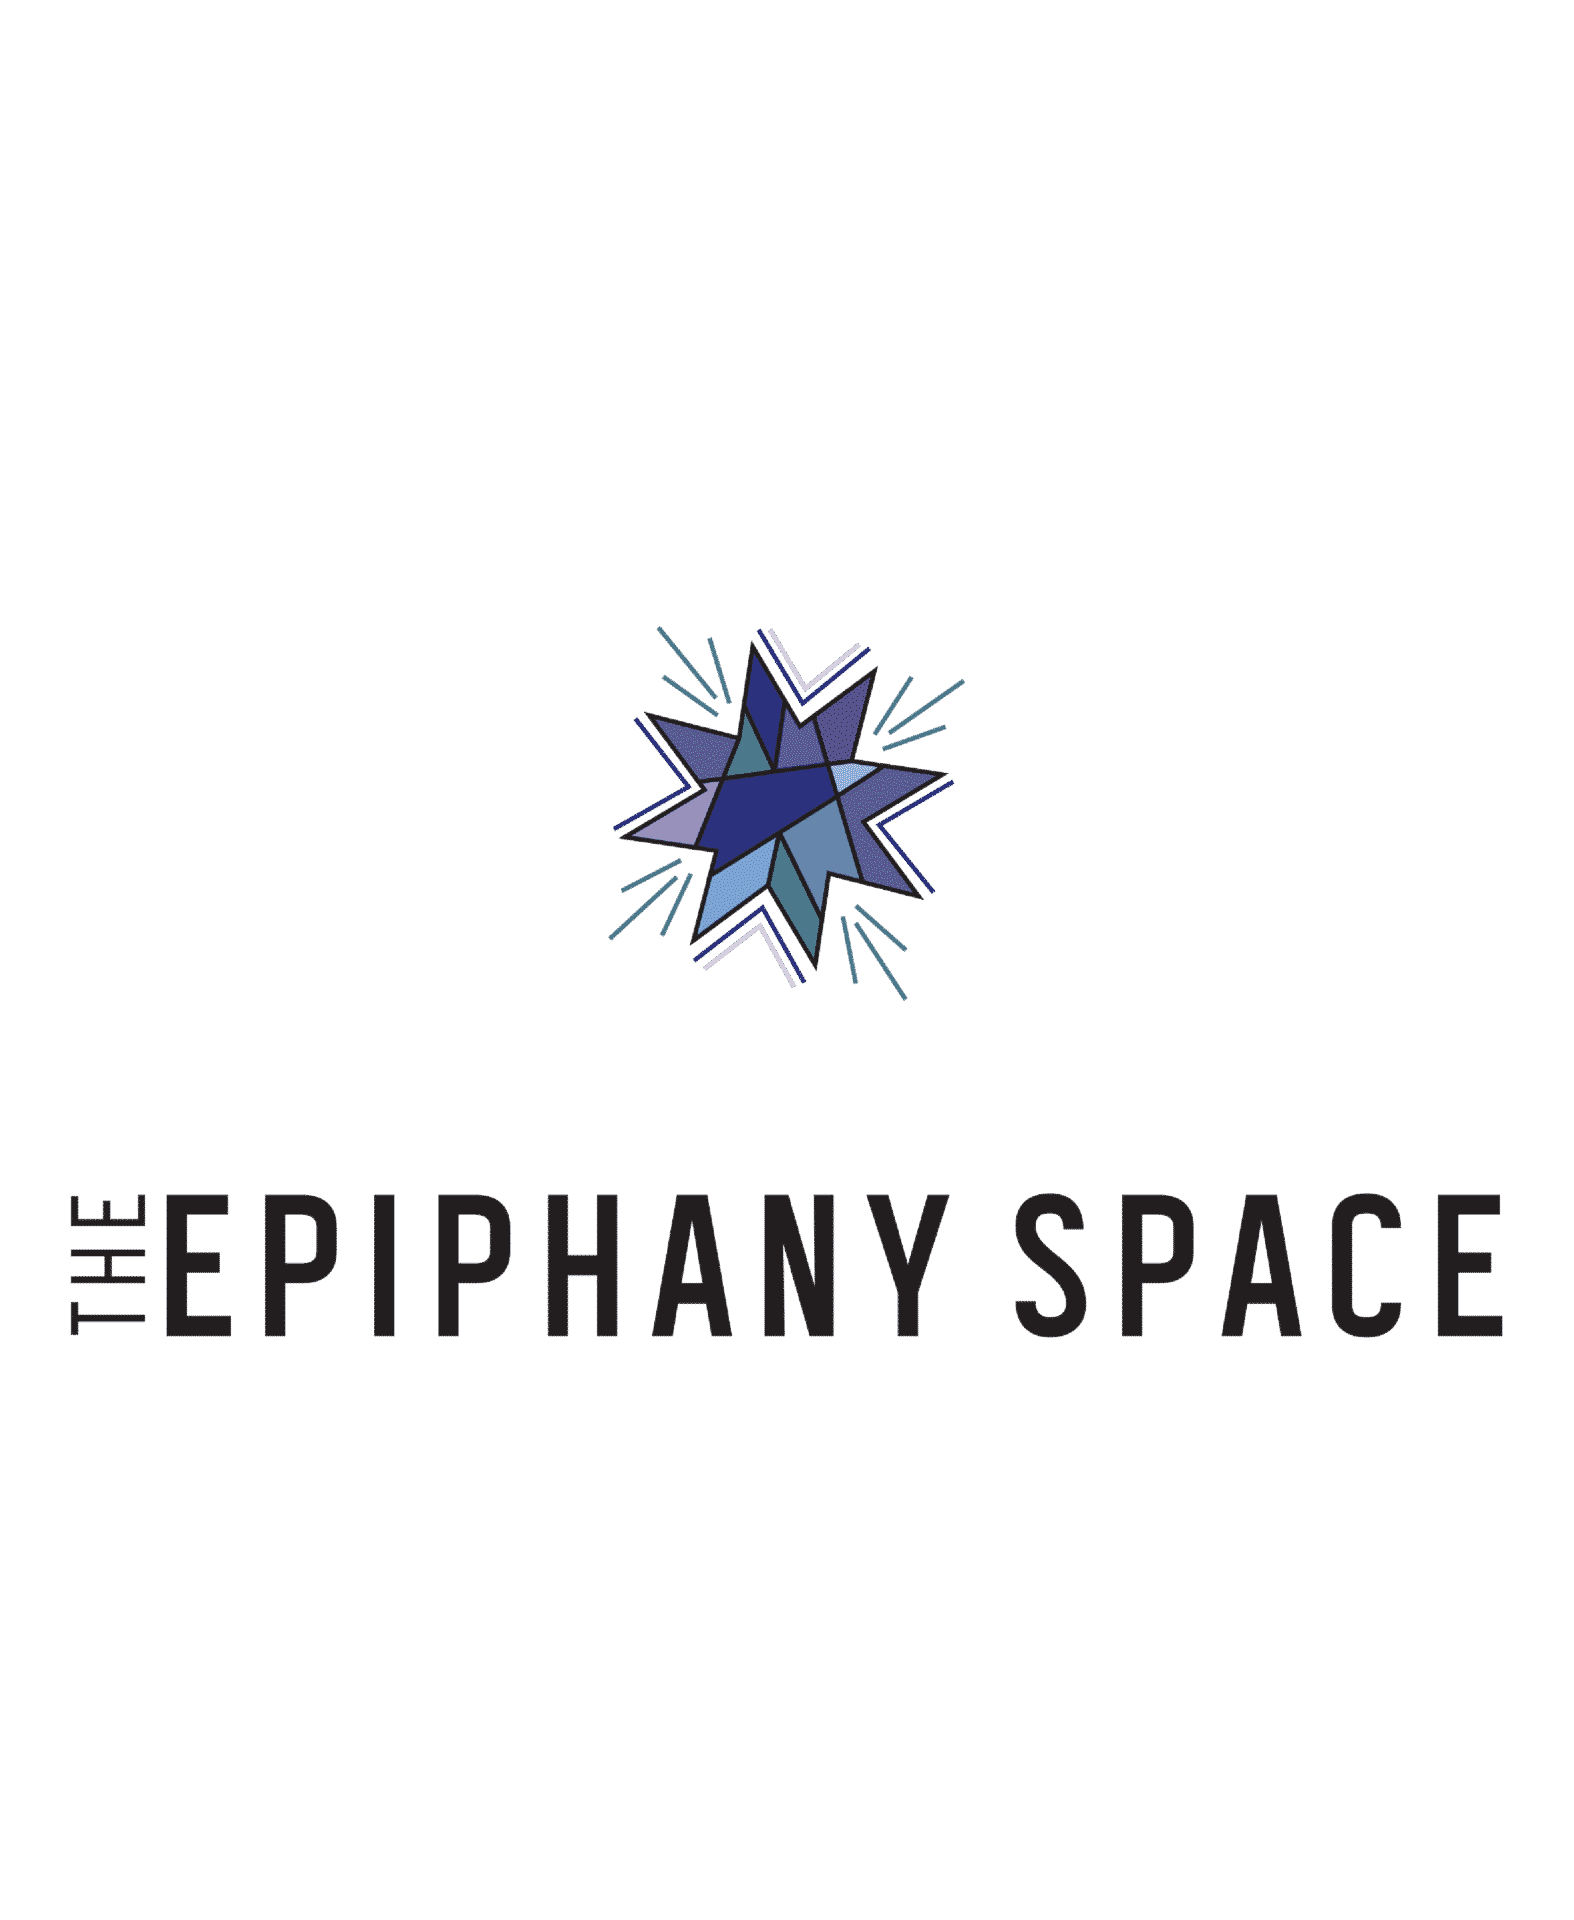 The Epiphany Space Logo Design